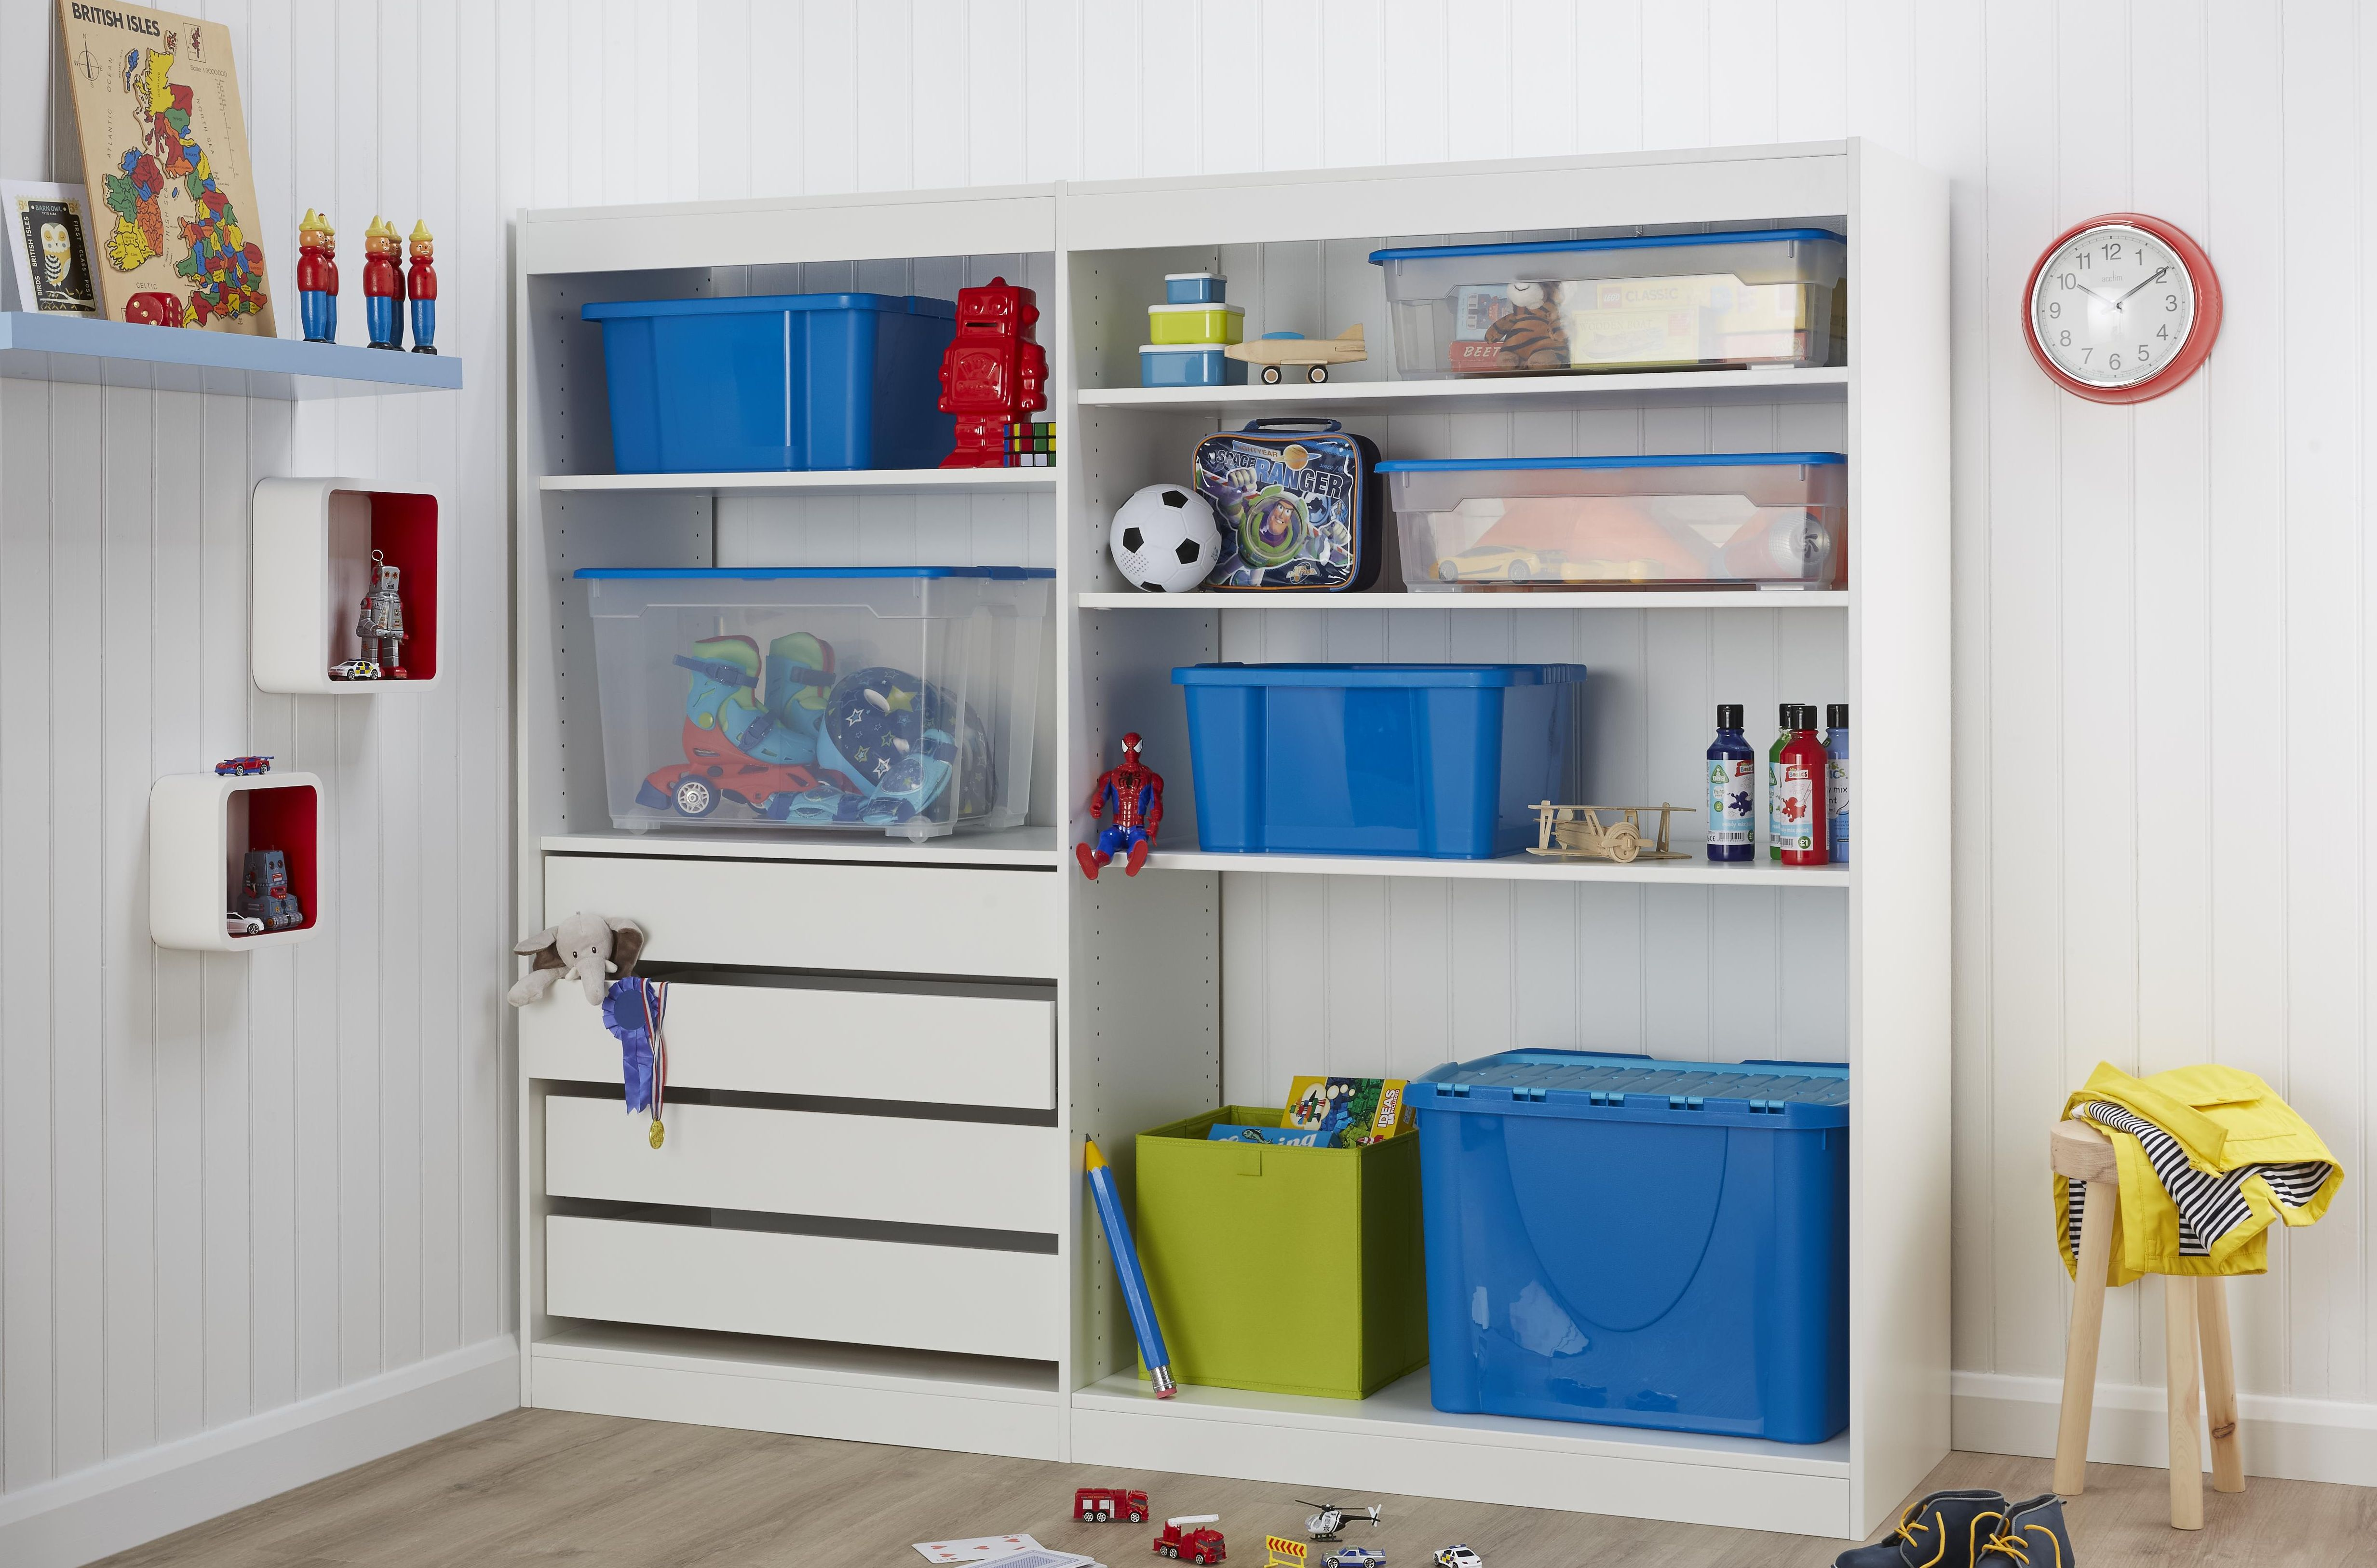 Perkin white kid's bedroom storage unit